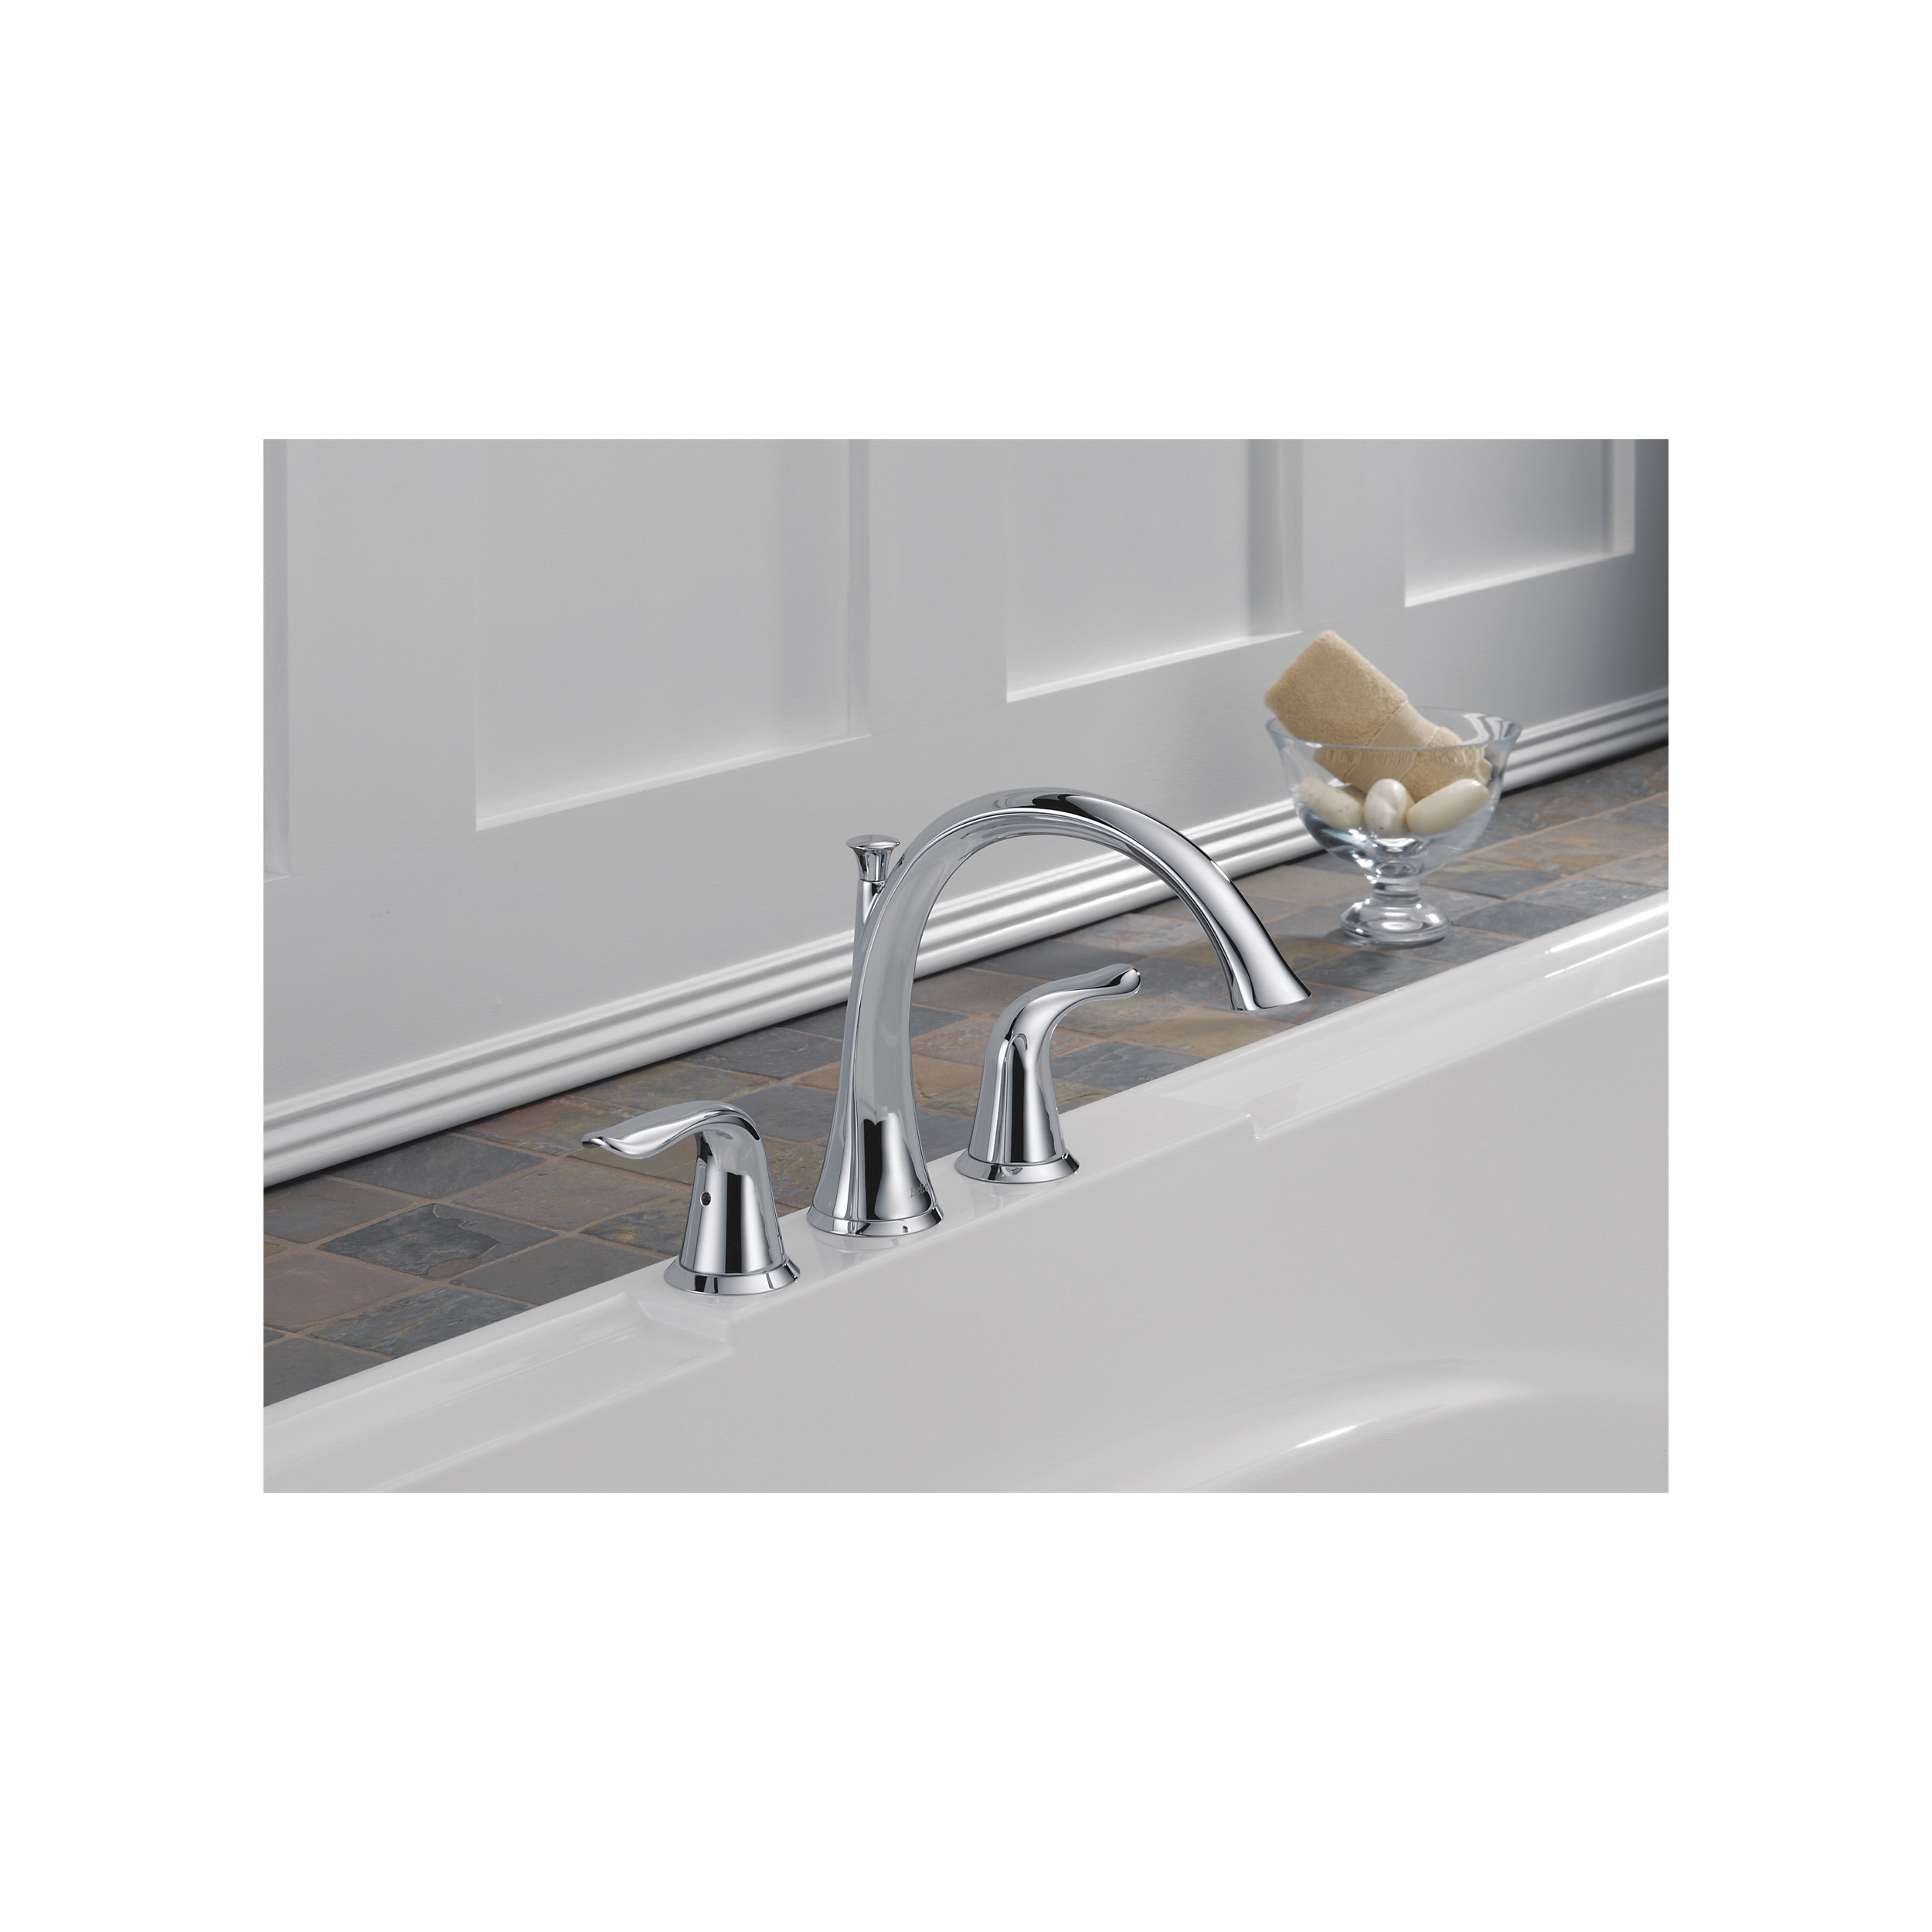 DELTA® T2738 Roman Tub Trim, Lahara®, 18 gpm, 8 to 16 in Center, Chrome Plated, 2 Handles, Function: Traditional, Hand Shower Yes/No: No, Domestic